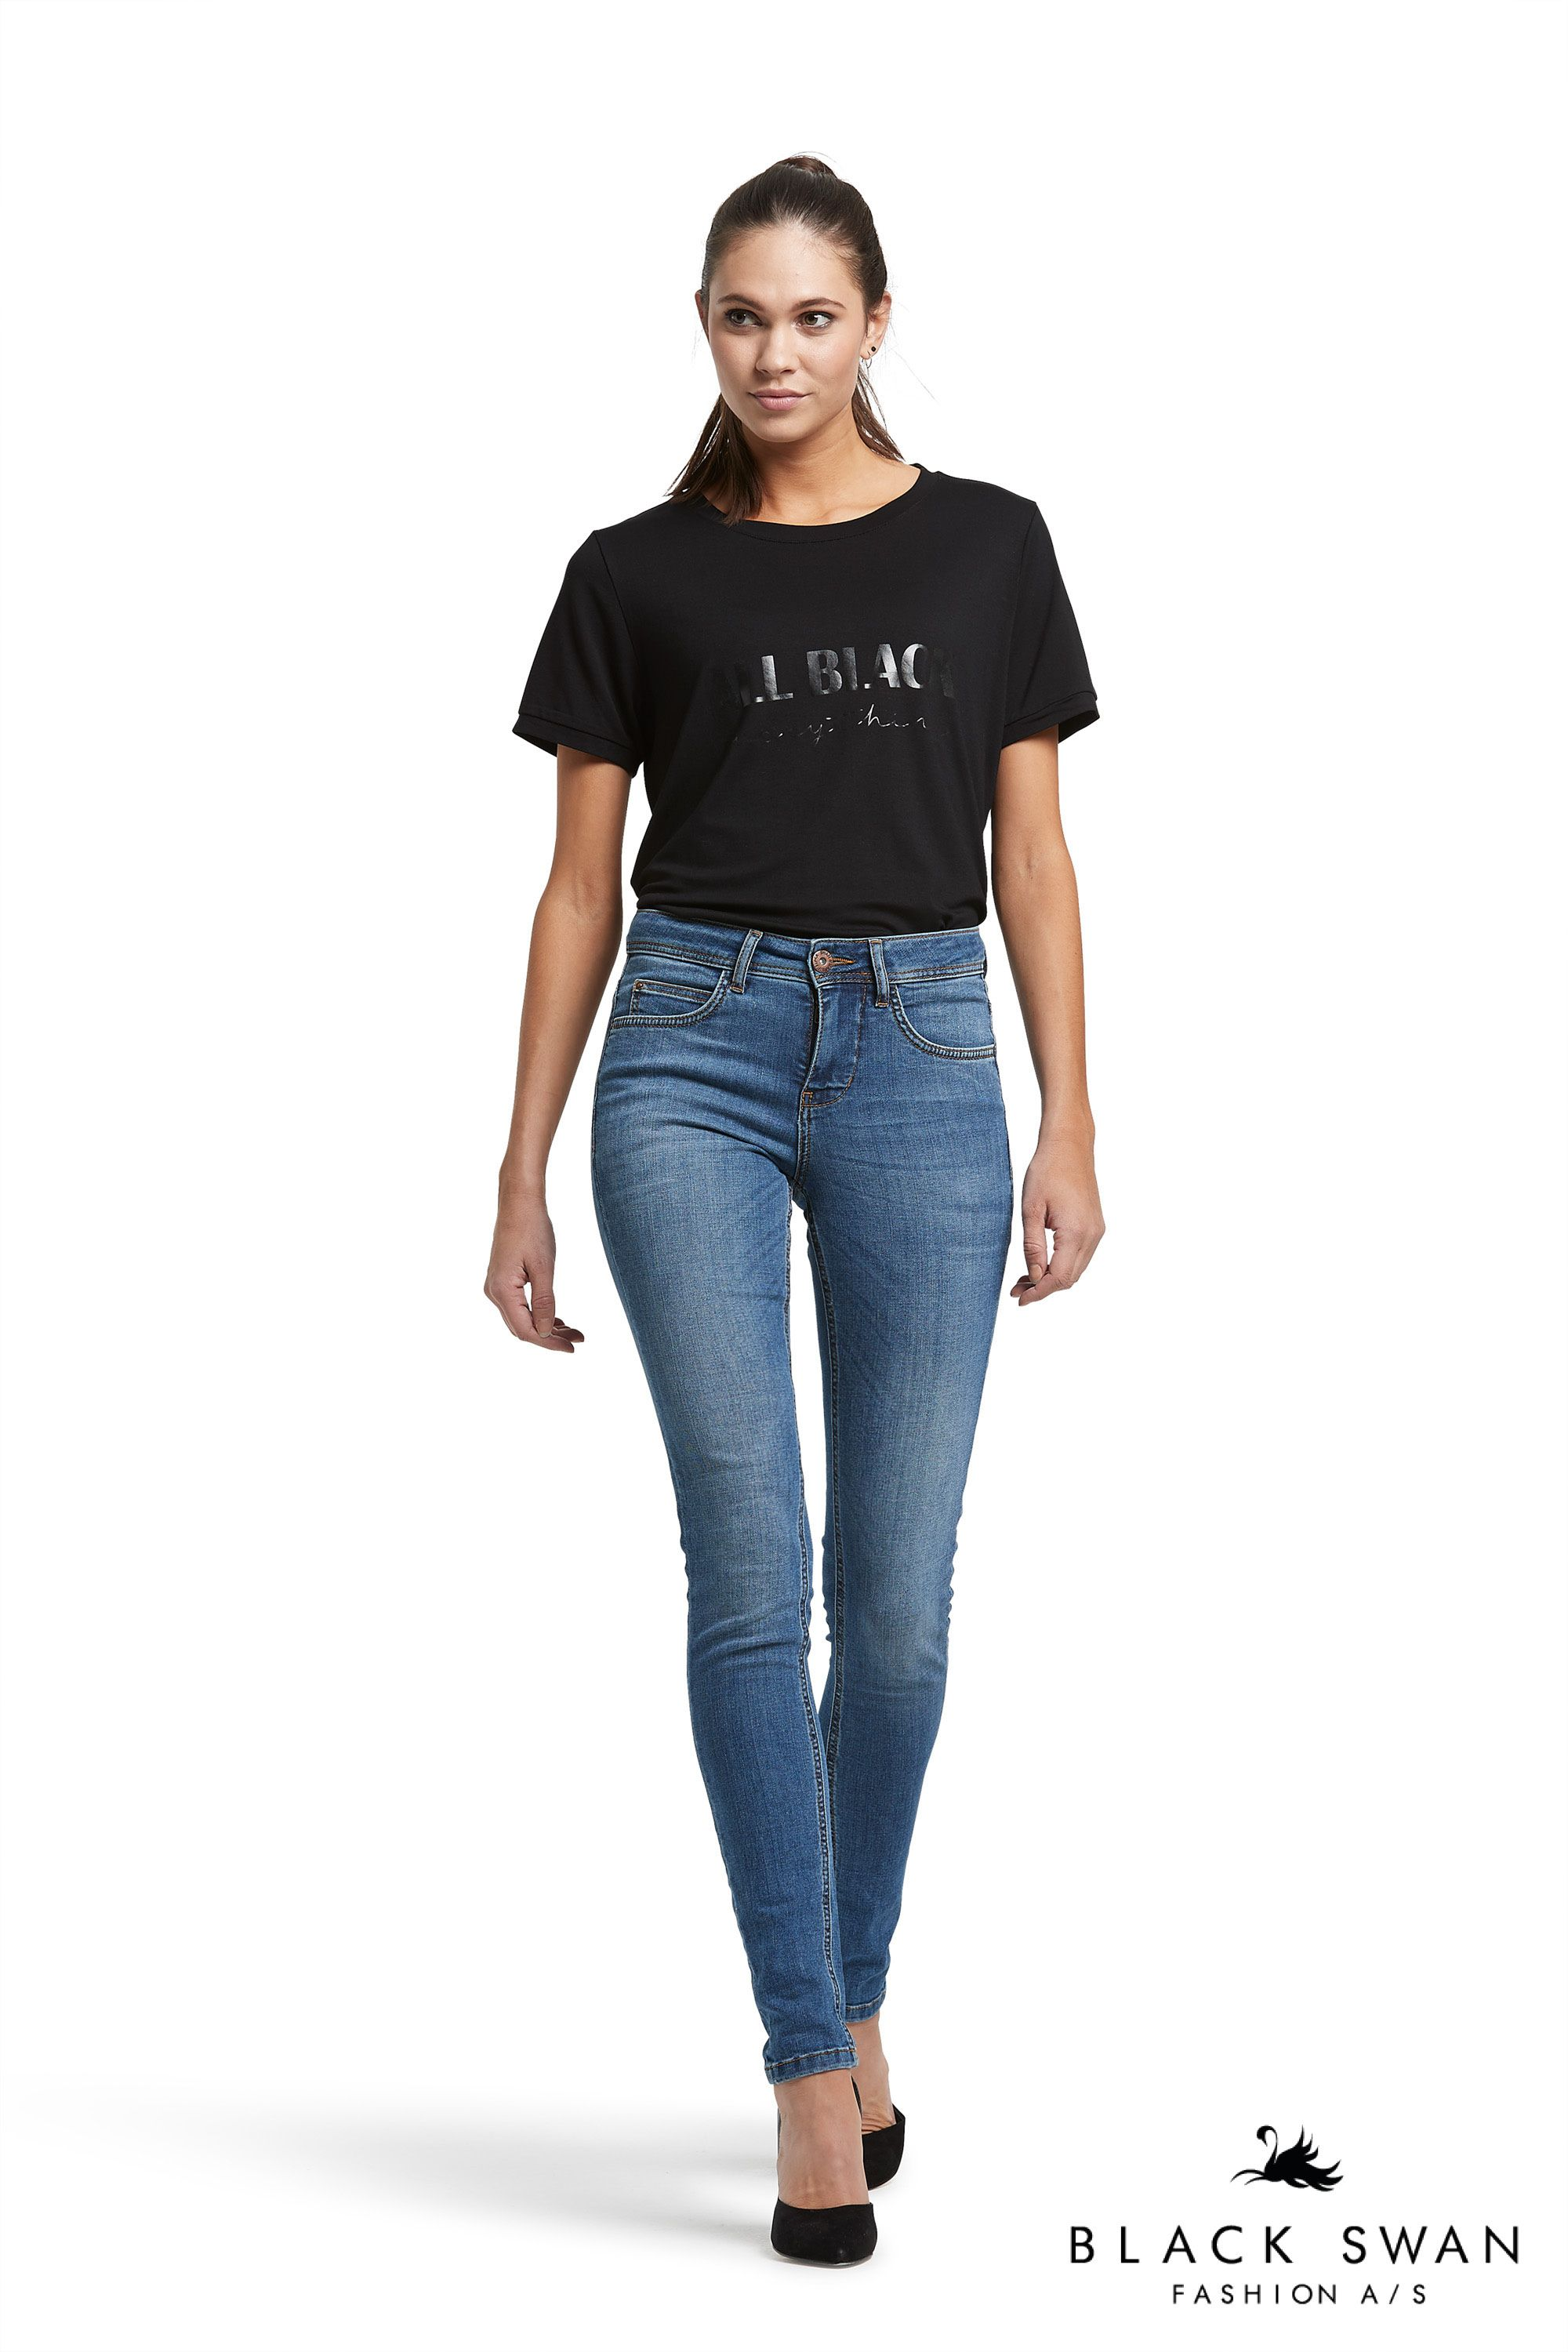 d1ee1e985a7 Justine tee with front print and Jade blue jeans